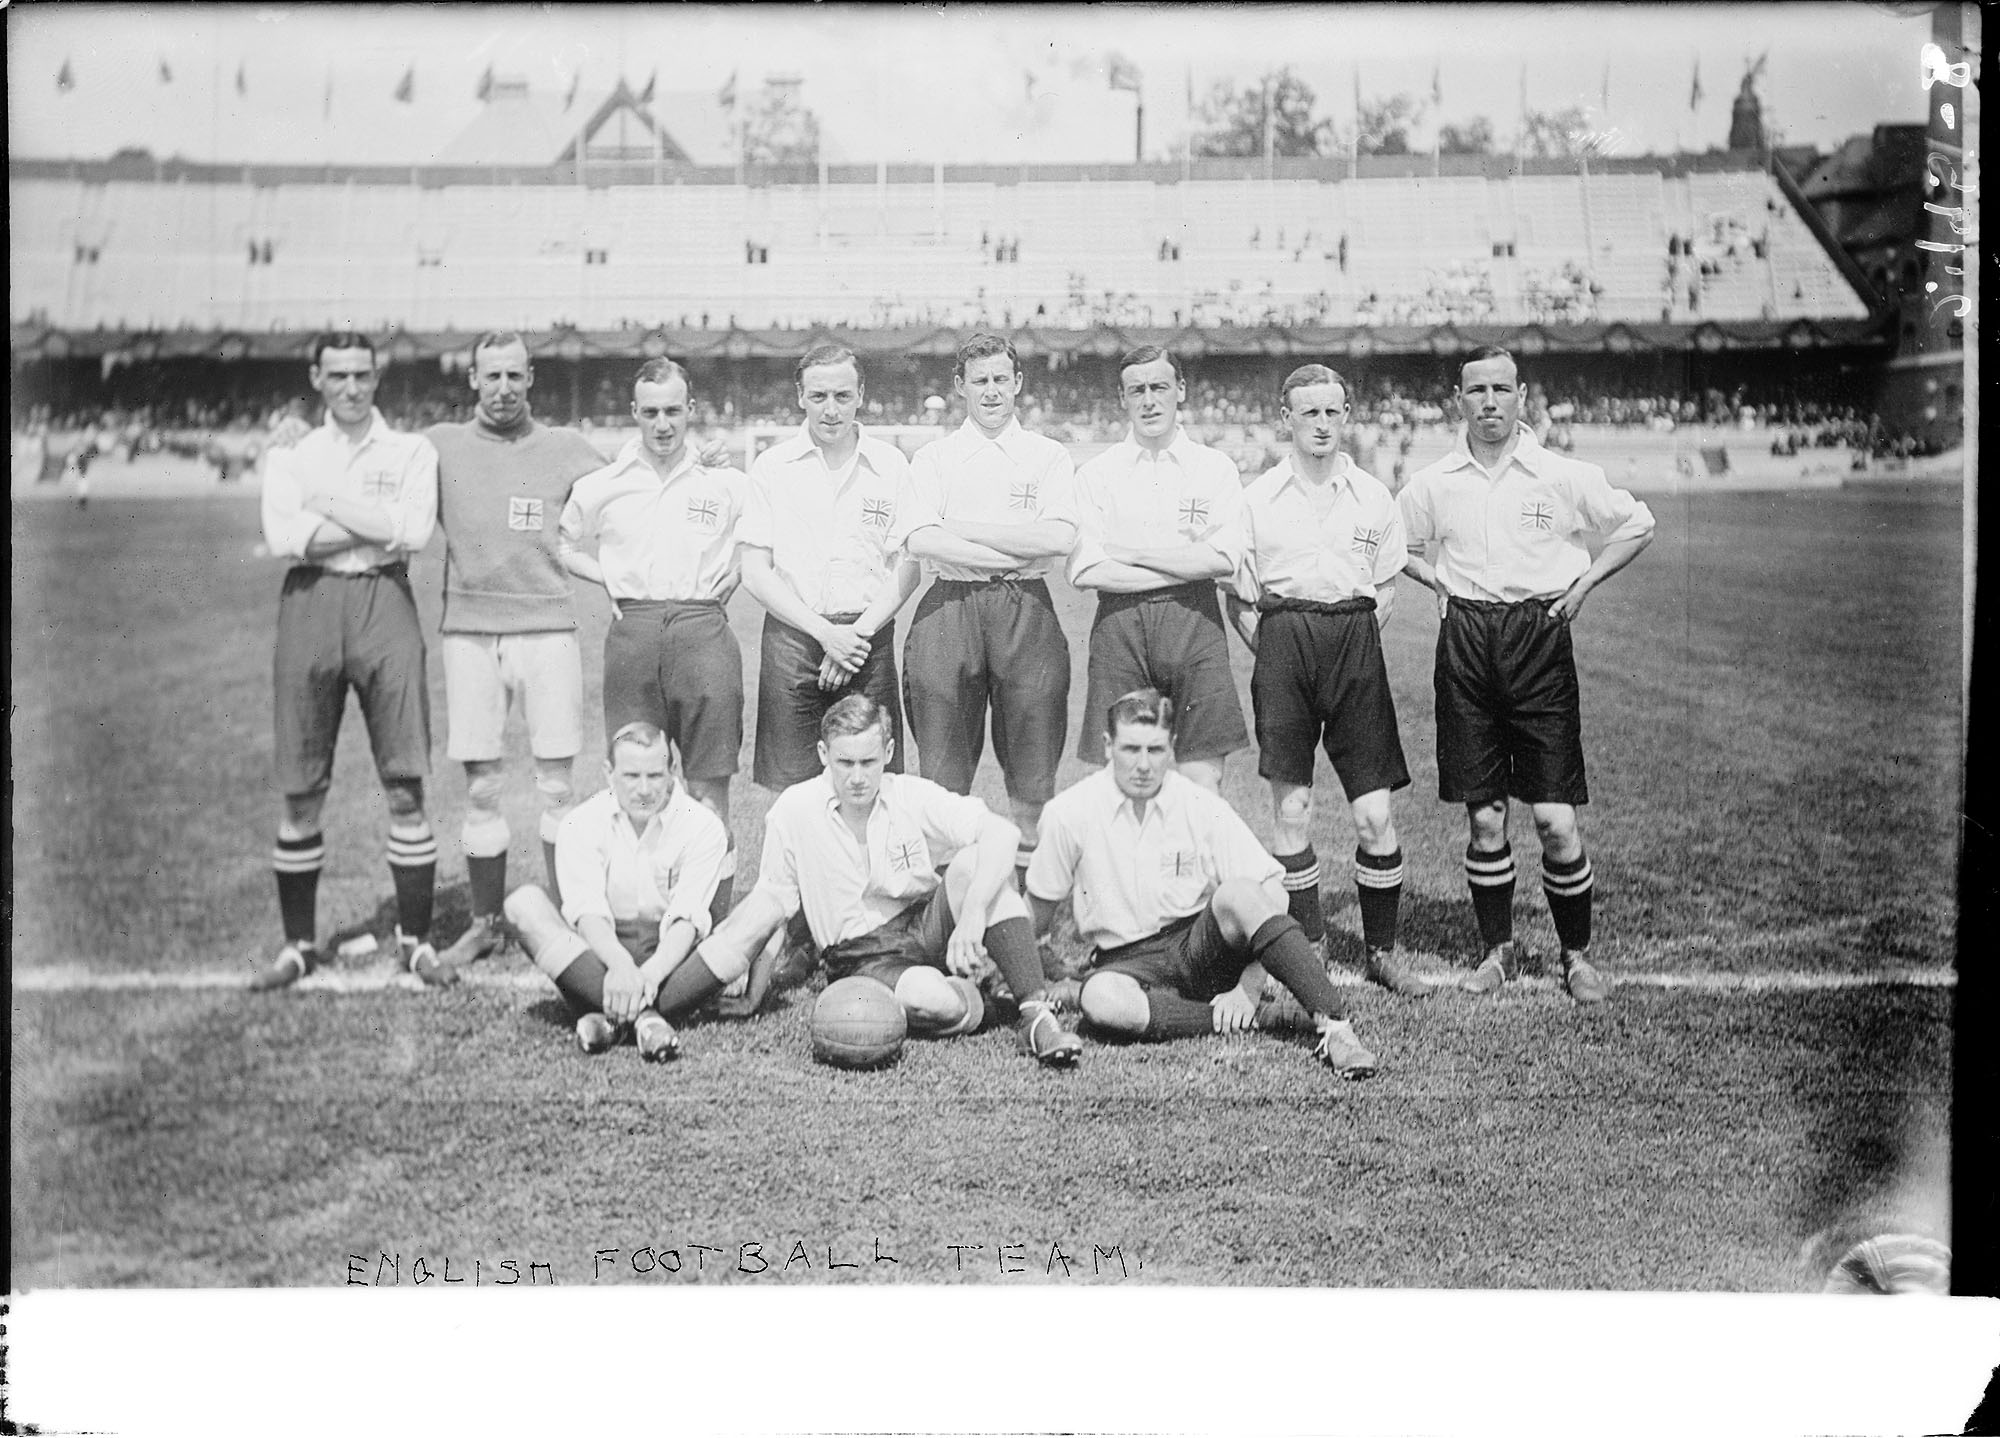 English football team, 1912 Summer Olympics in Stockholm, Sweden